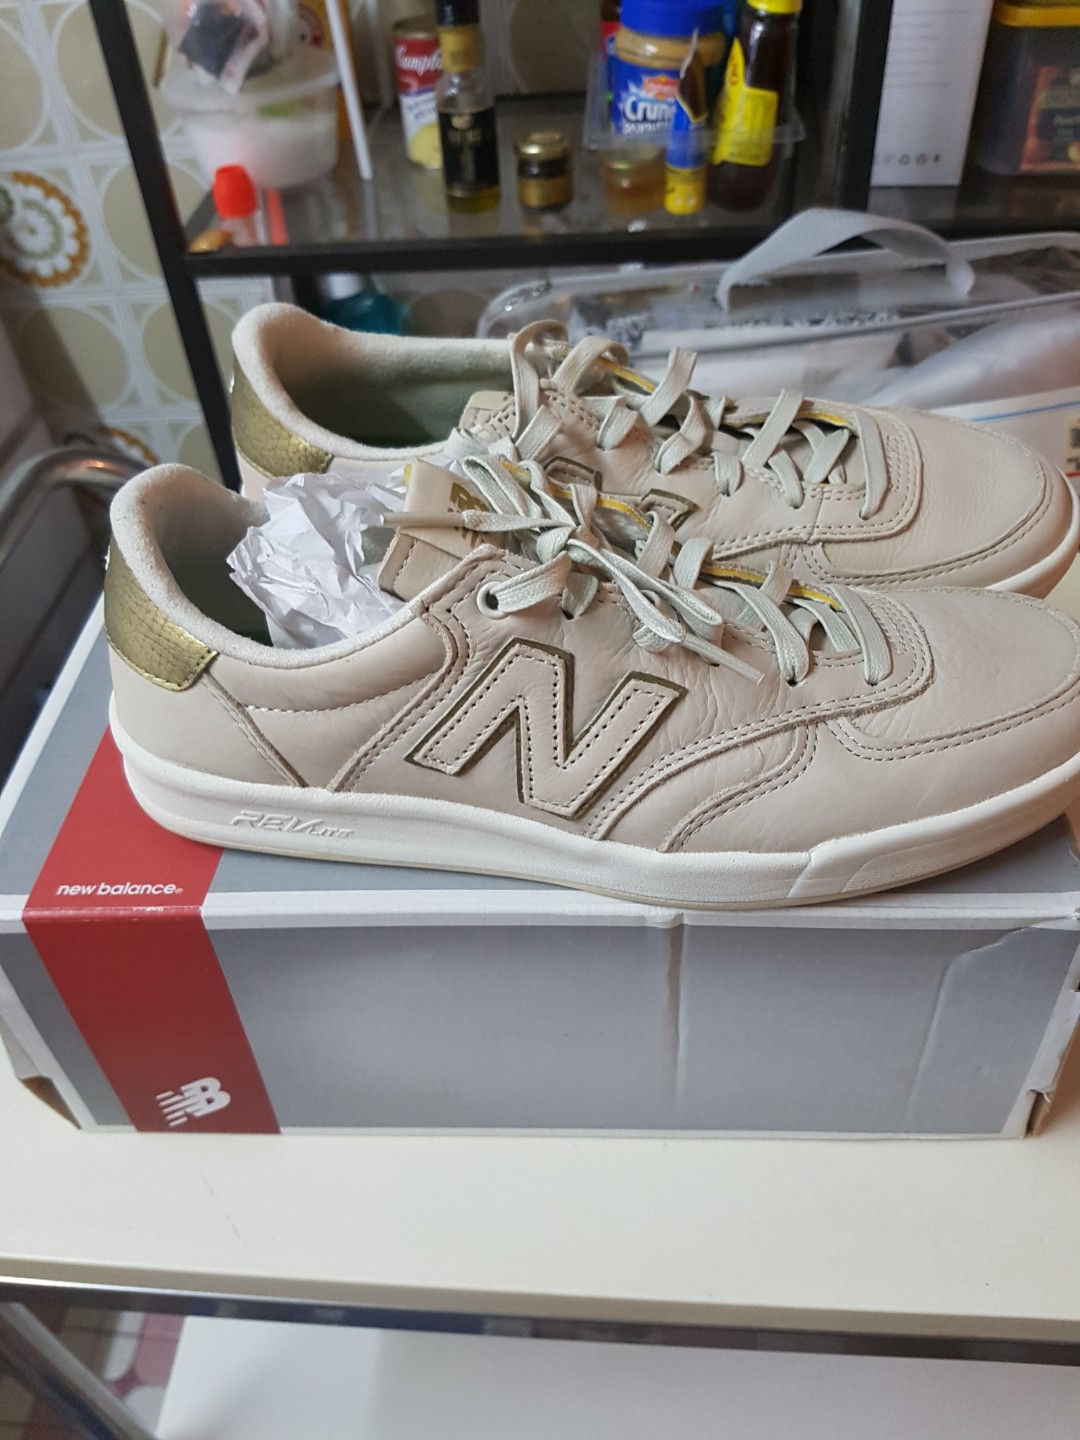 97b08ece32b5c new balance crt300 leather with gold ascent